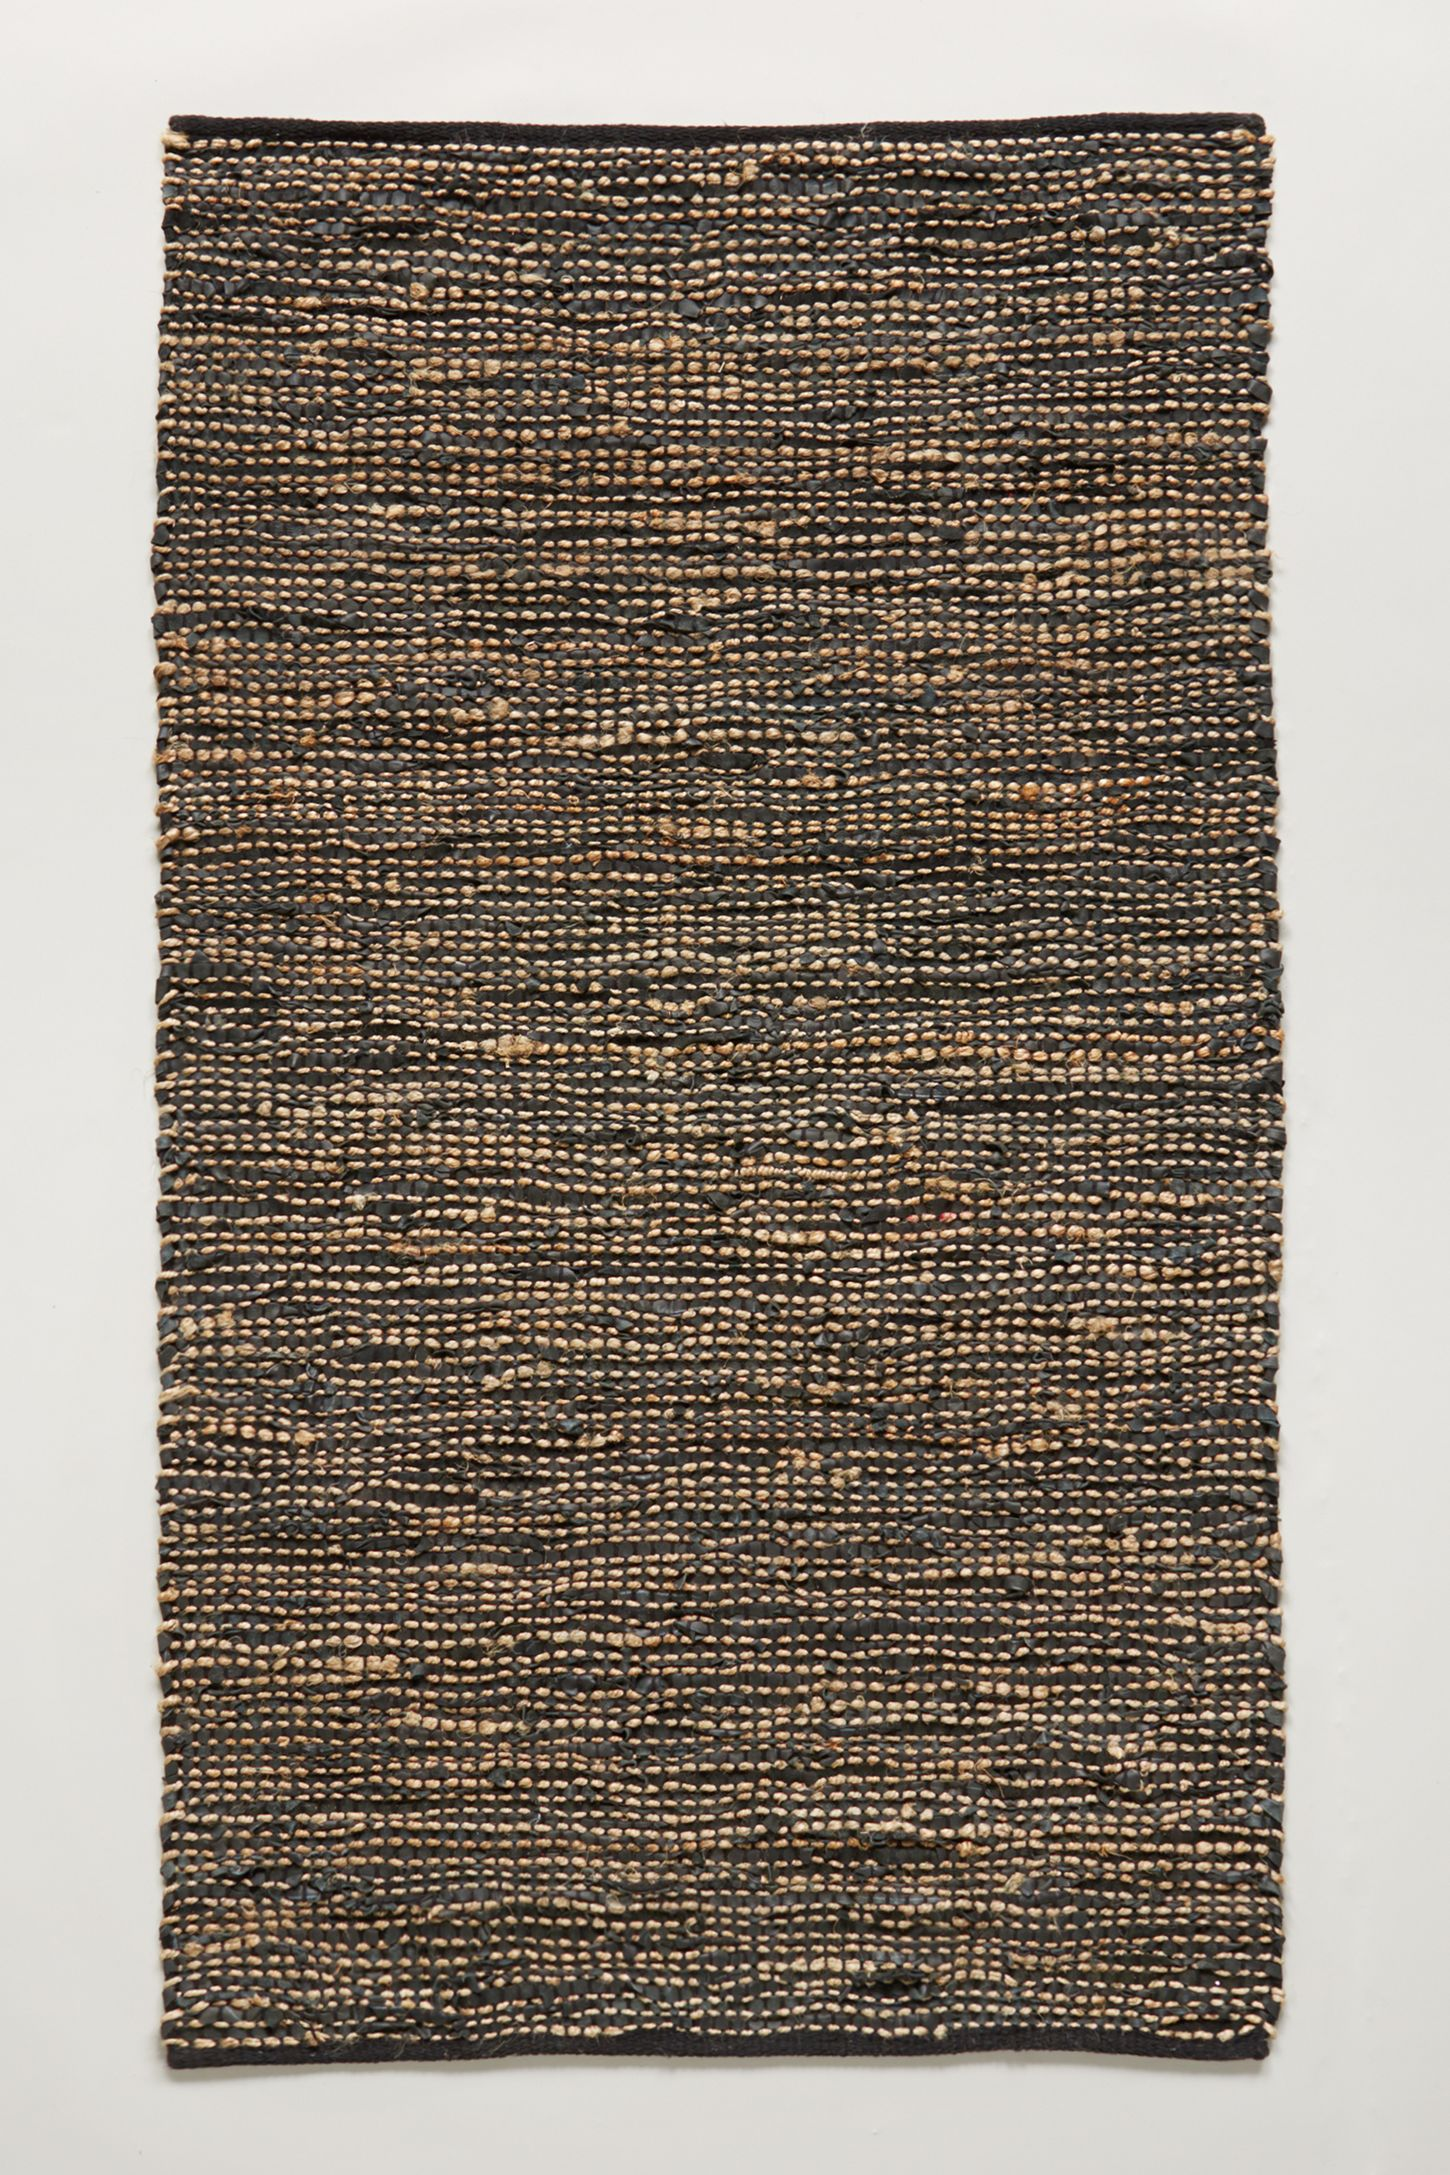 Leather Twined Rug